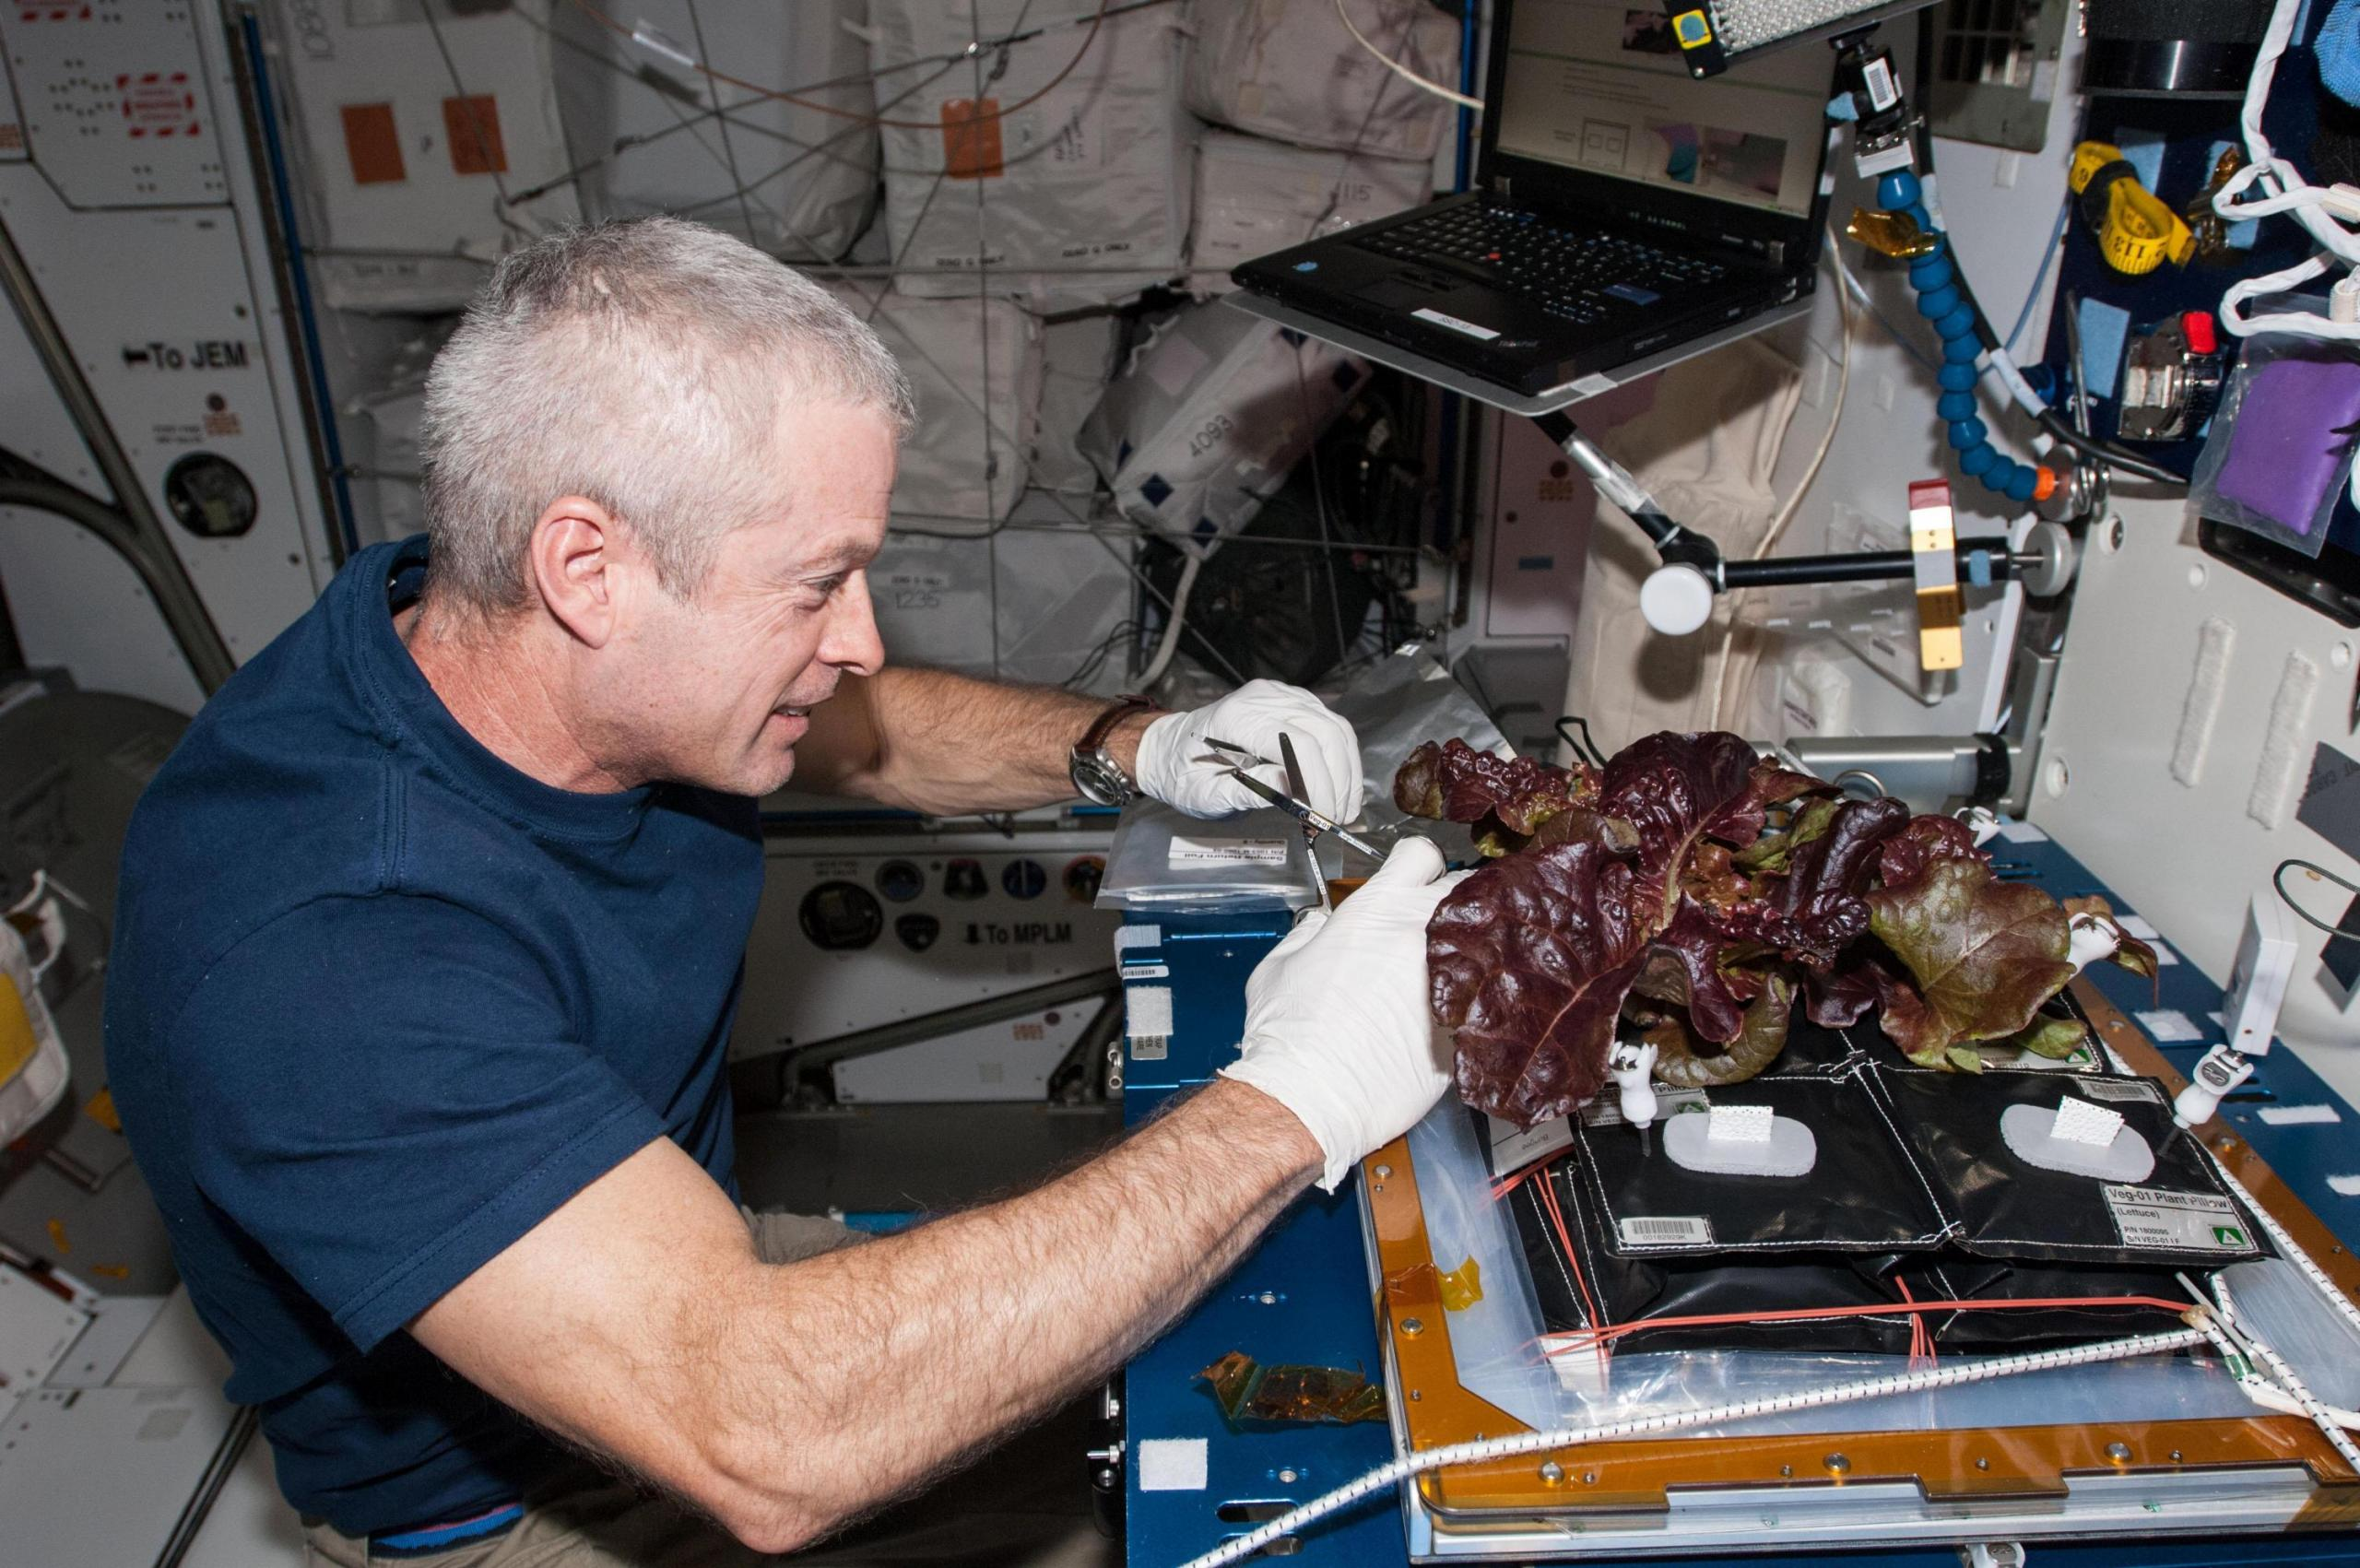 Man in space conducting experiment on plant using test equipment.